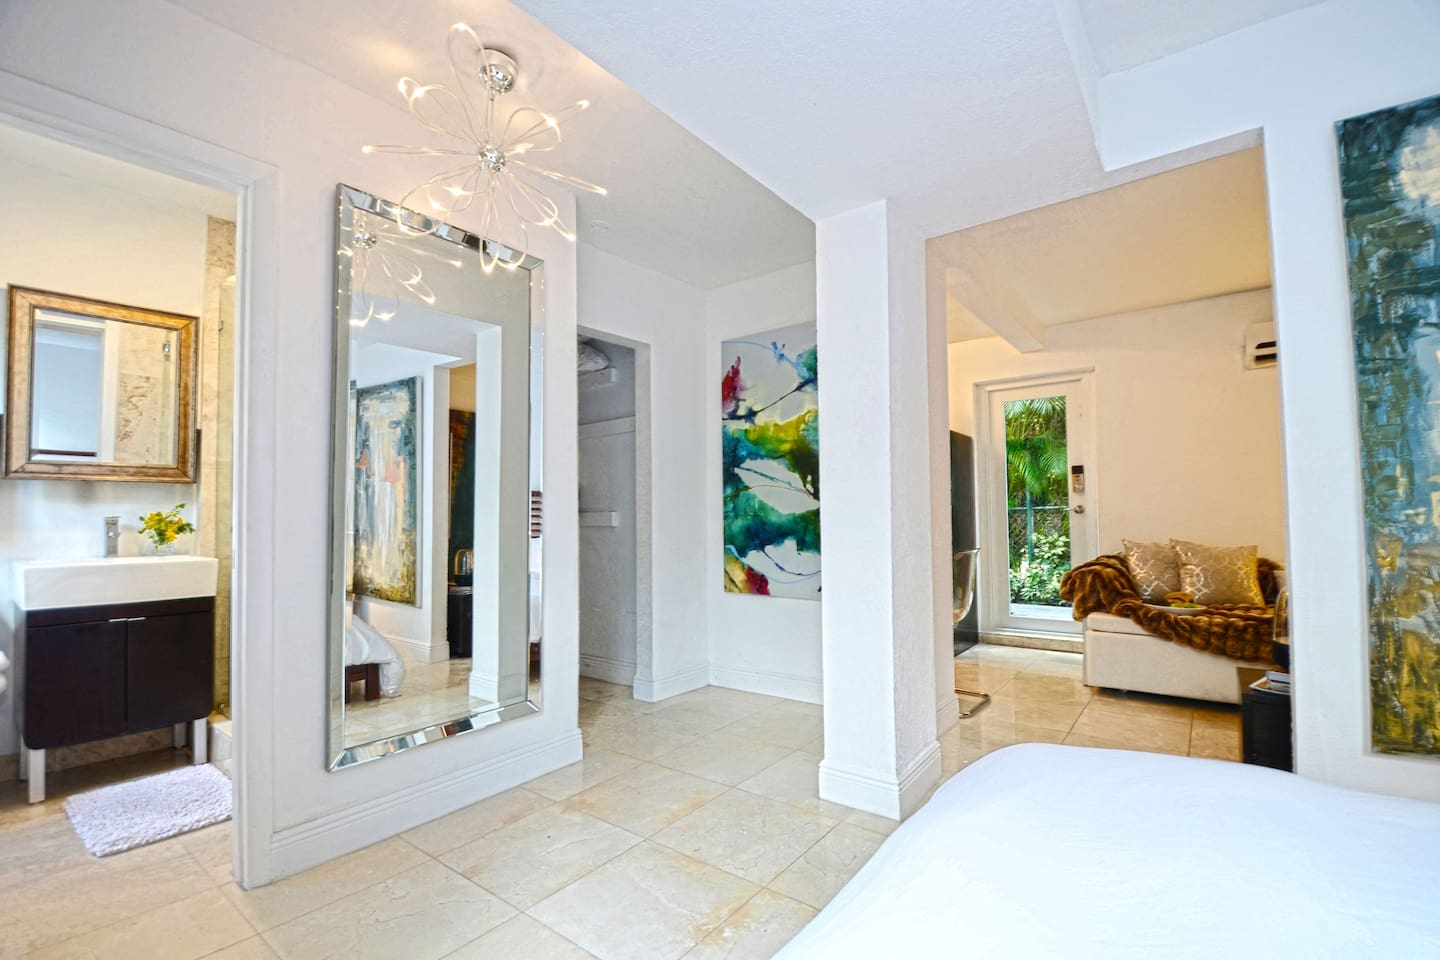 View from the bedroom area. The entry door is an impact resistant hurricane-proof door with a roll down shade for privacy